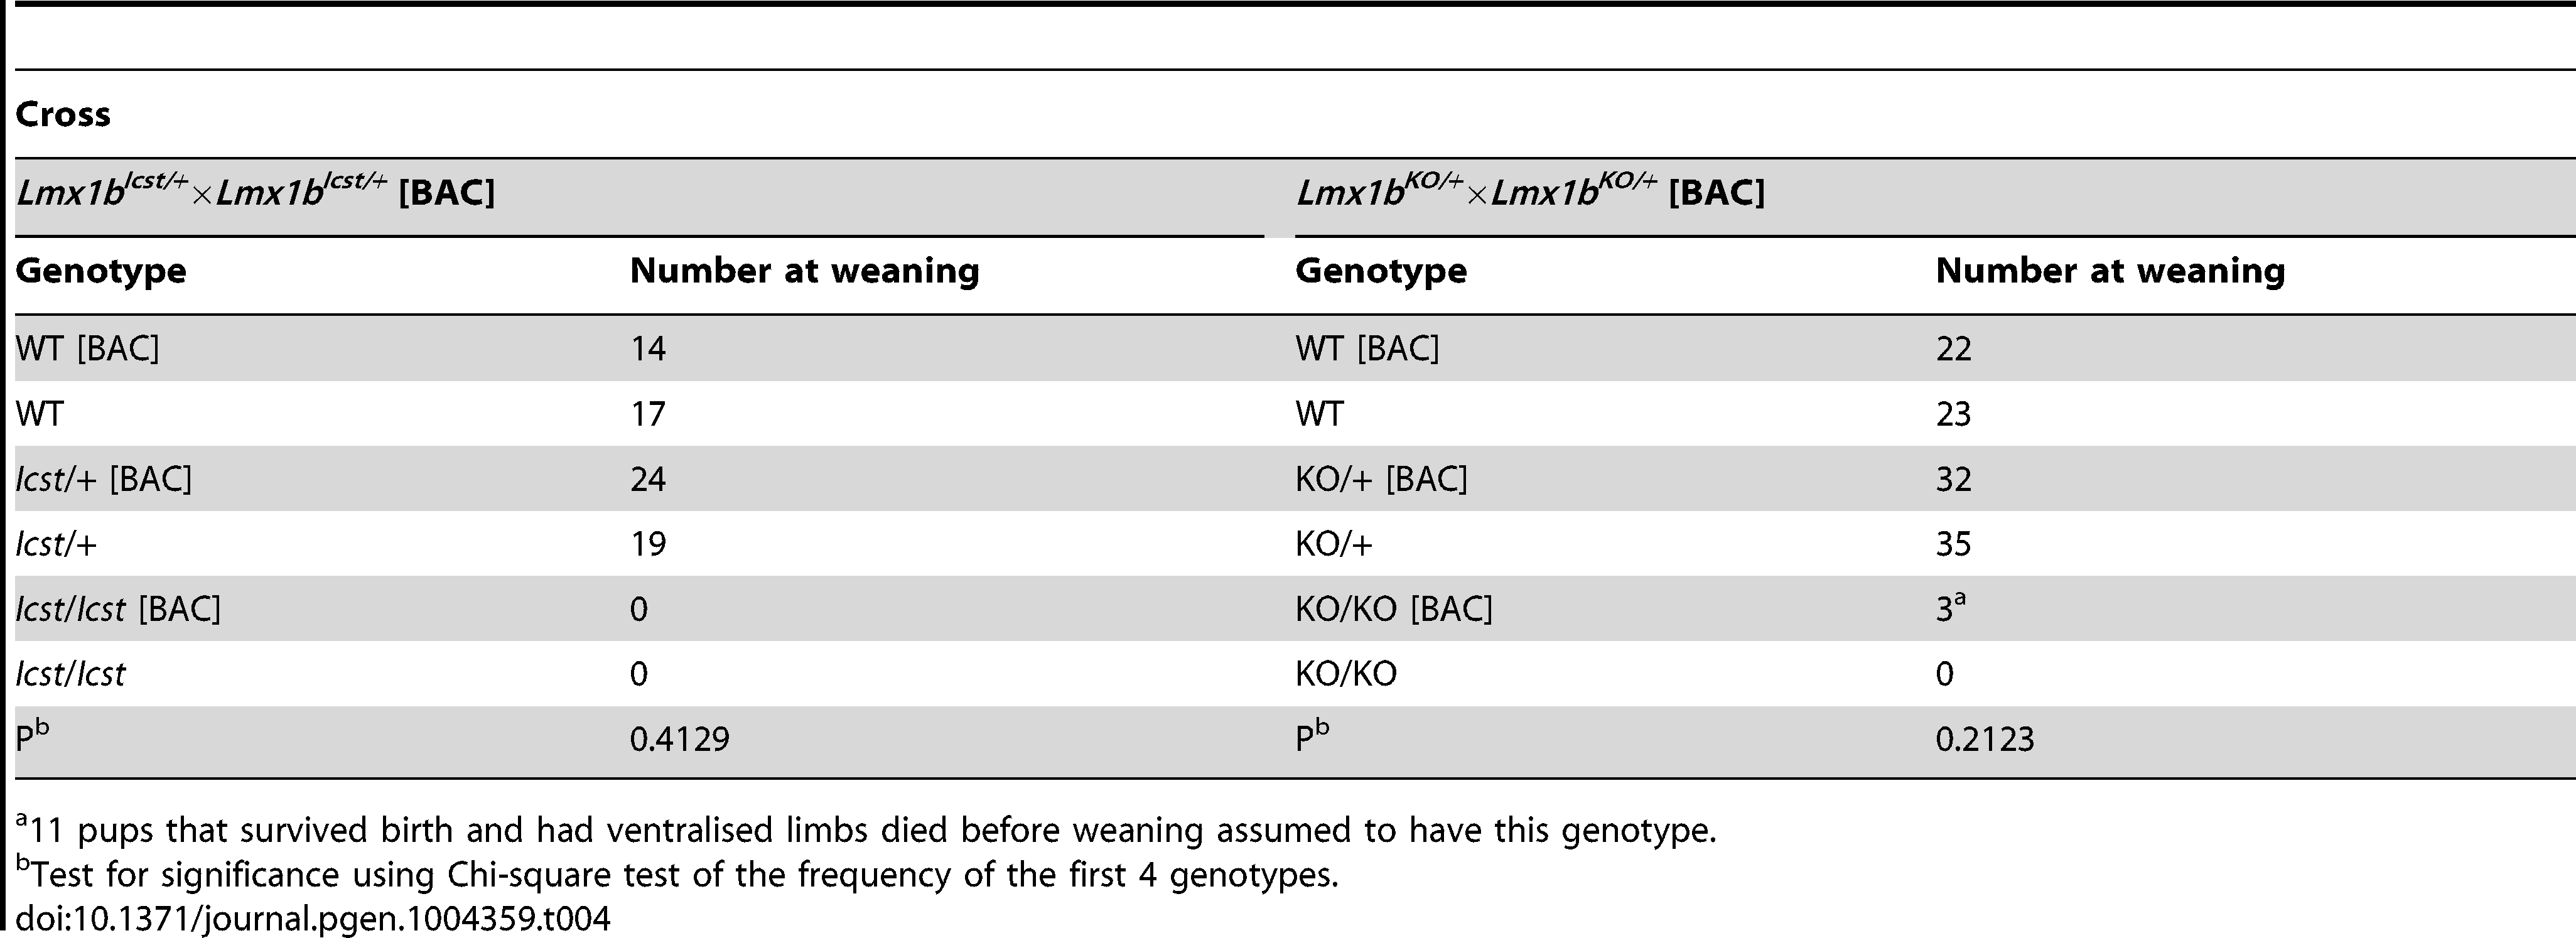 The transgenic BAC rescues the <i>Icst</i> heterozygous semi-lethal phenotype but not the homozygous lethal phenotype and can rescue the knockout homozygous lethal phenotype.